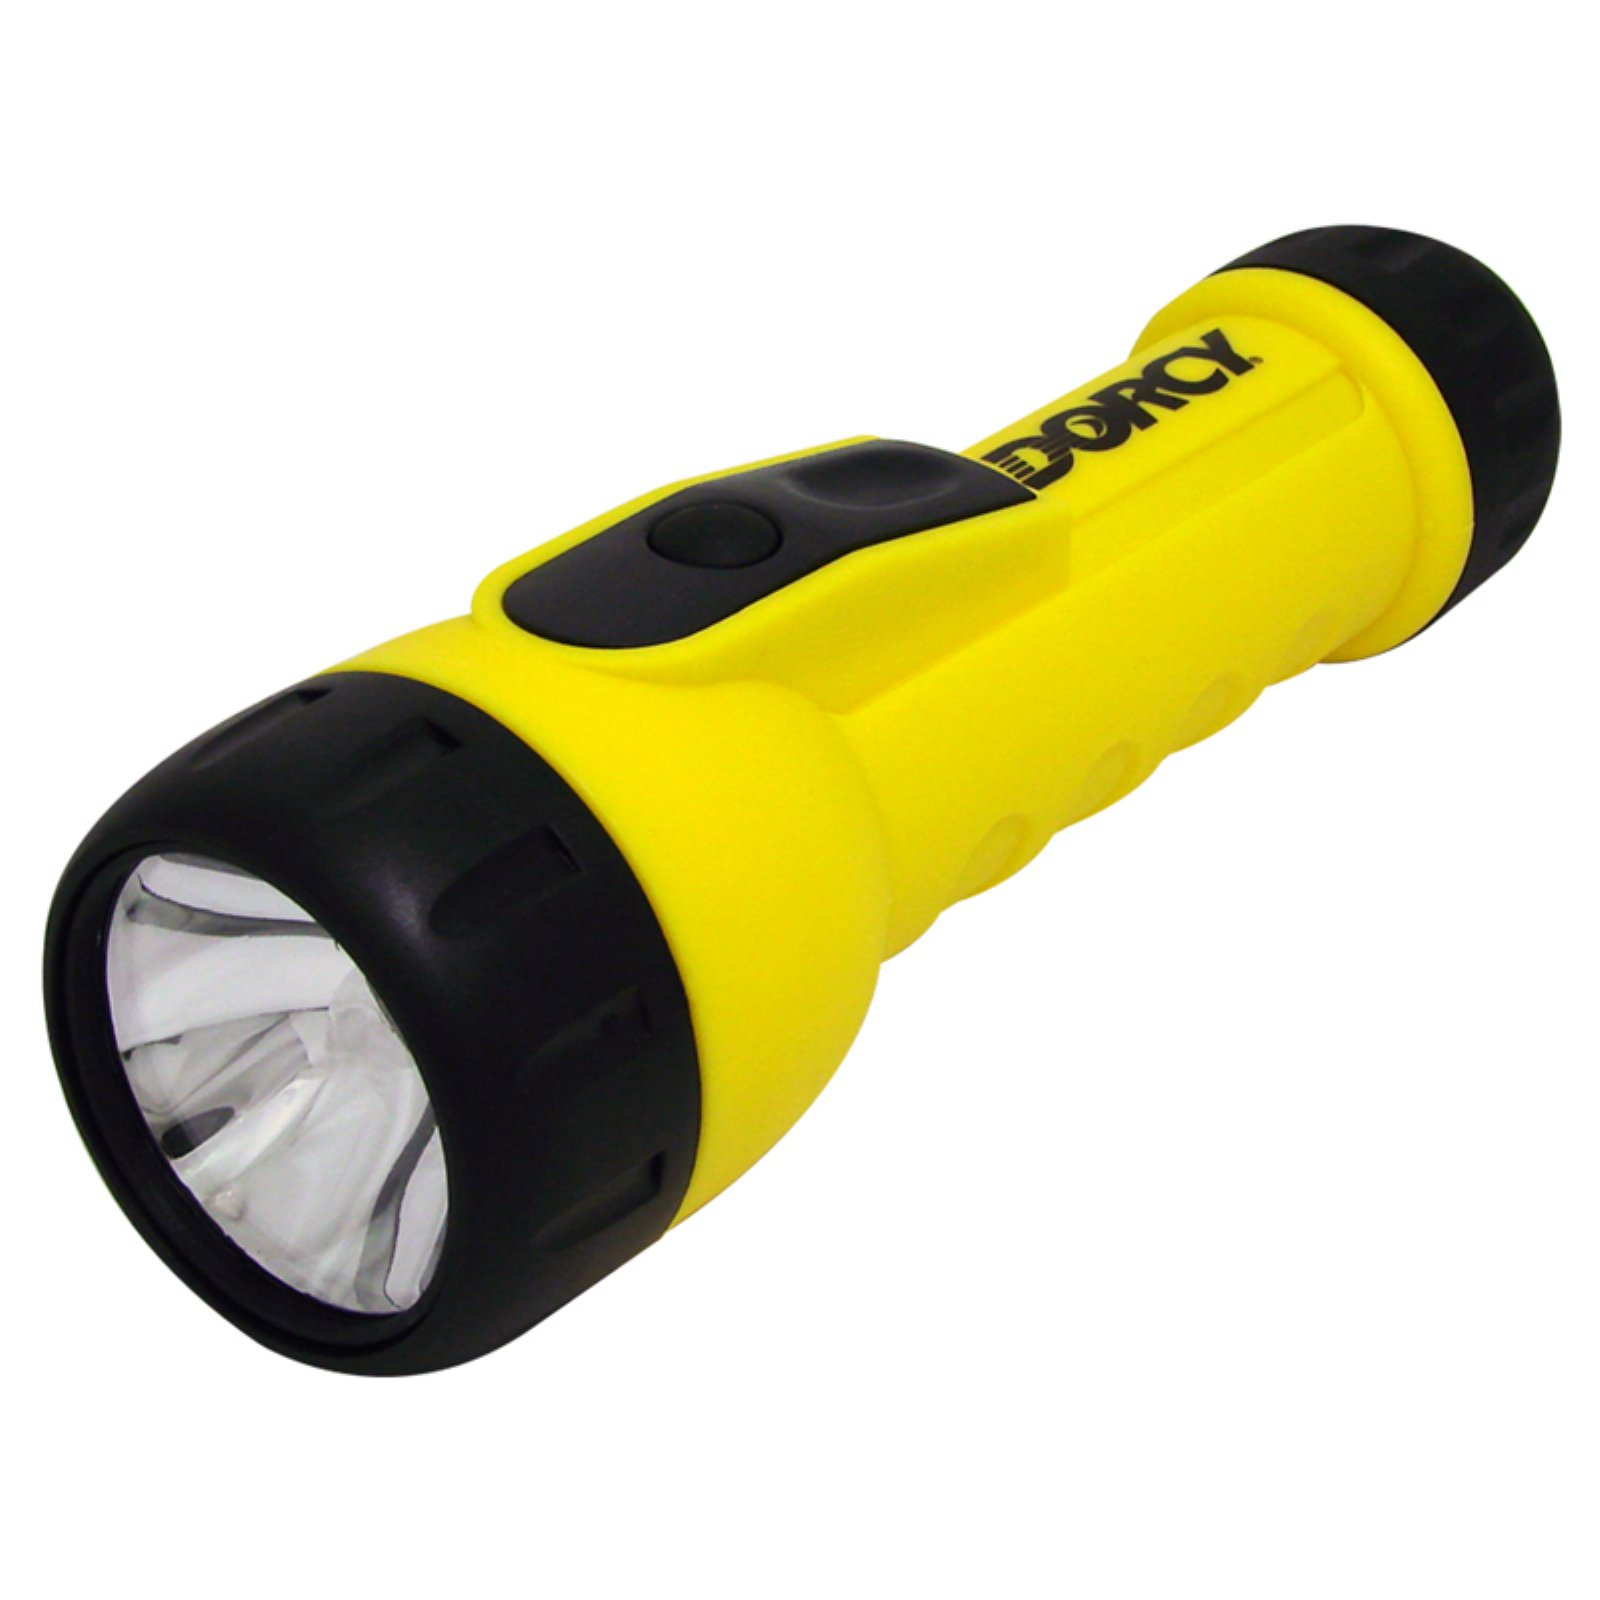 Dorcy 41-2350 Weather Resistant LED Worklight Flashlight with Batteries, 20 lumens